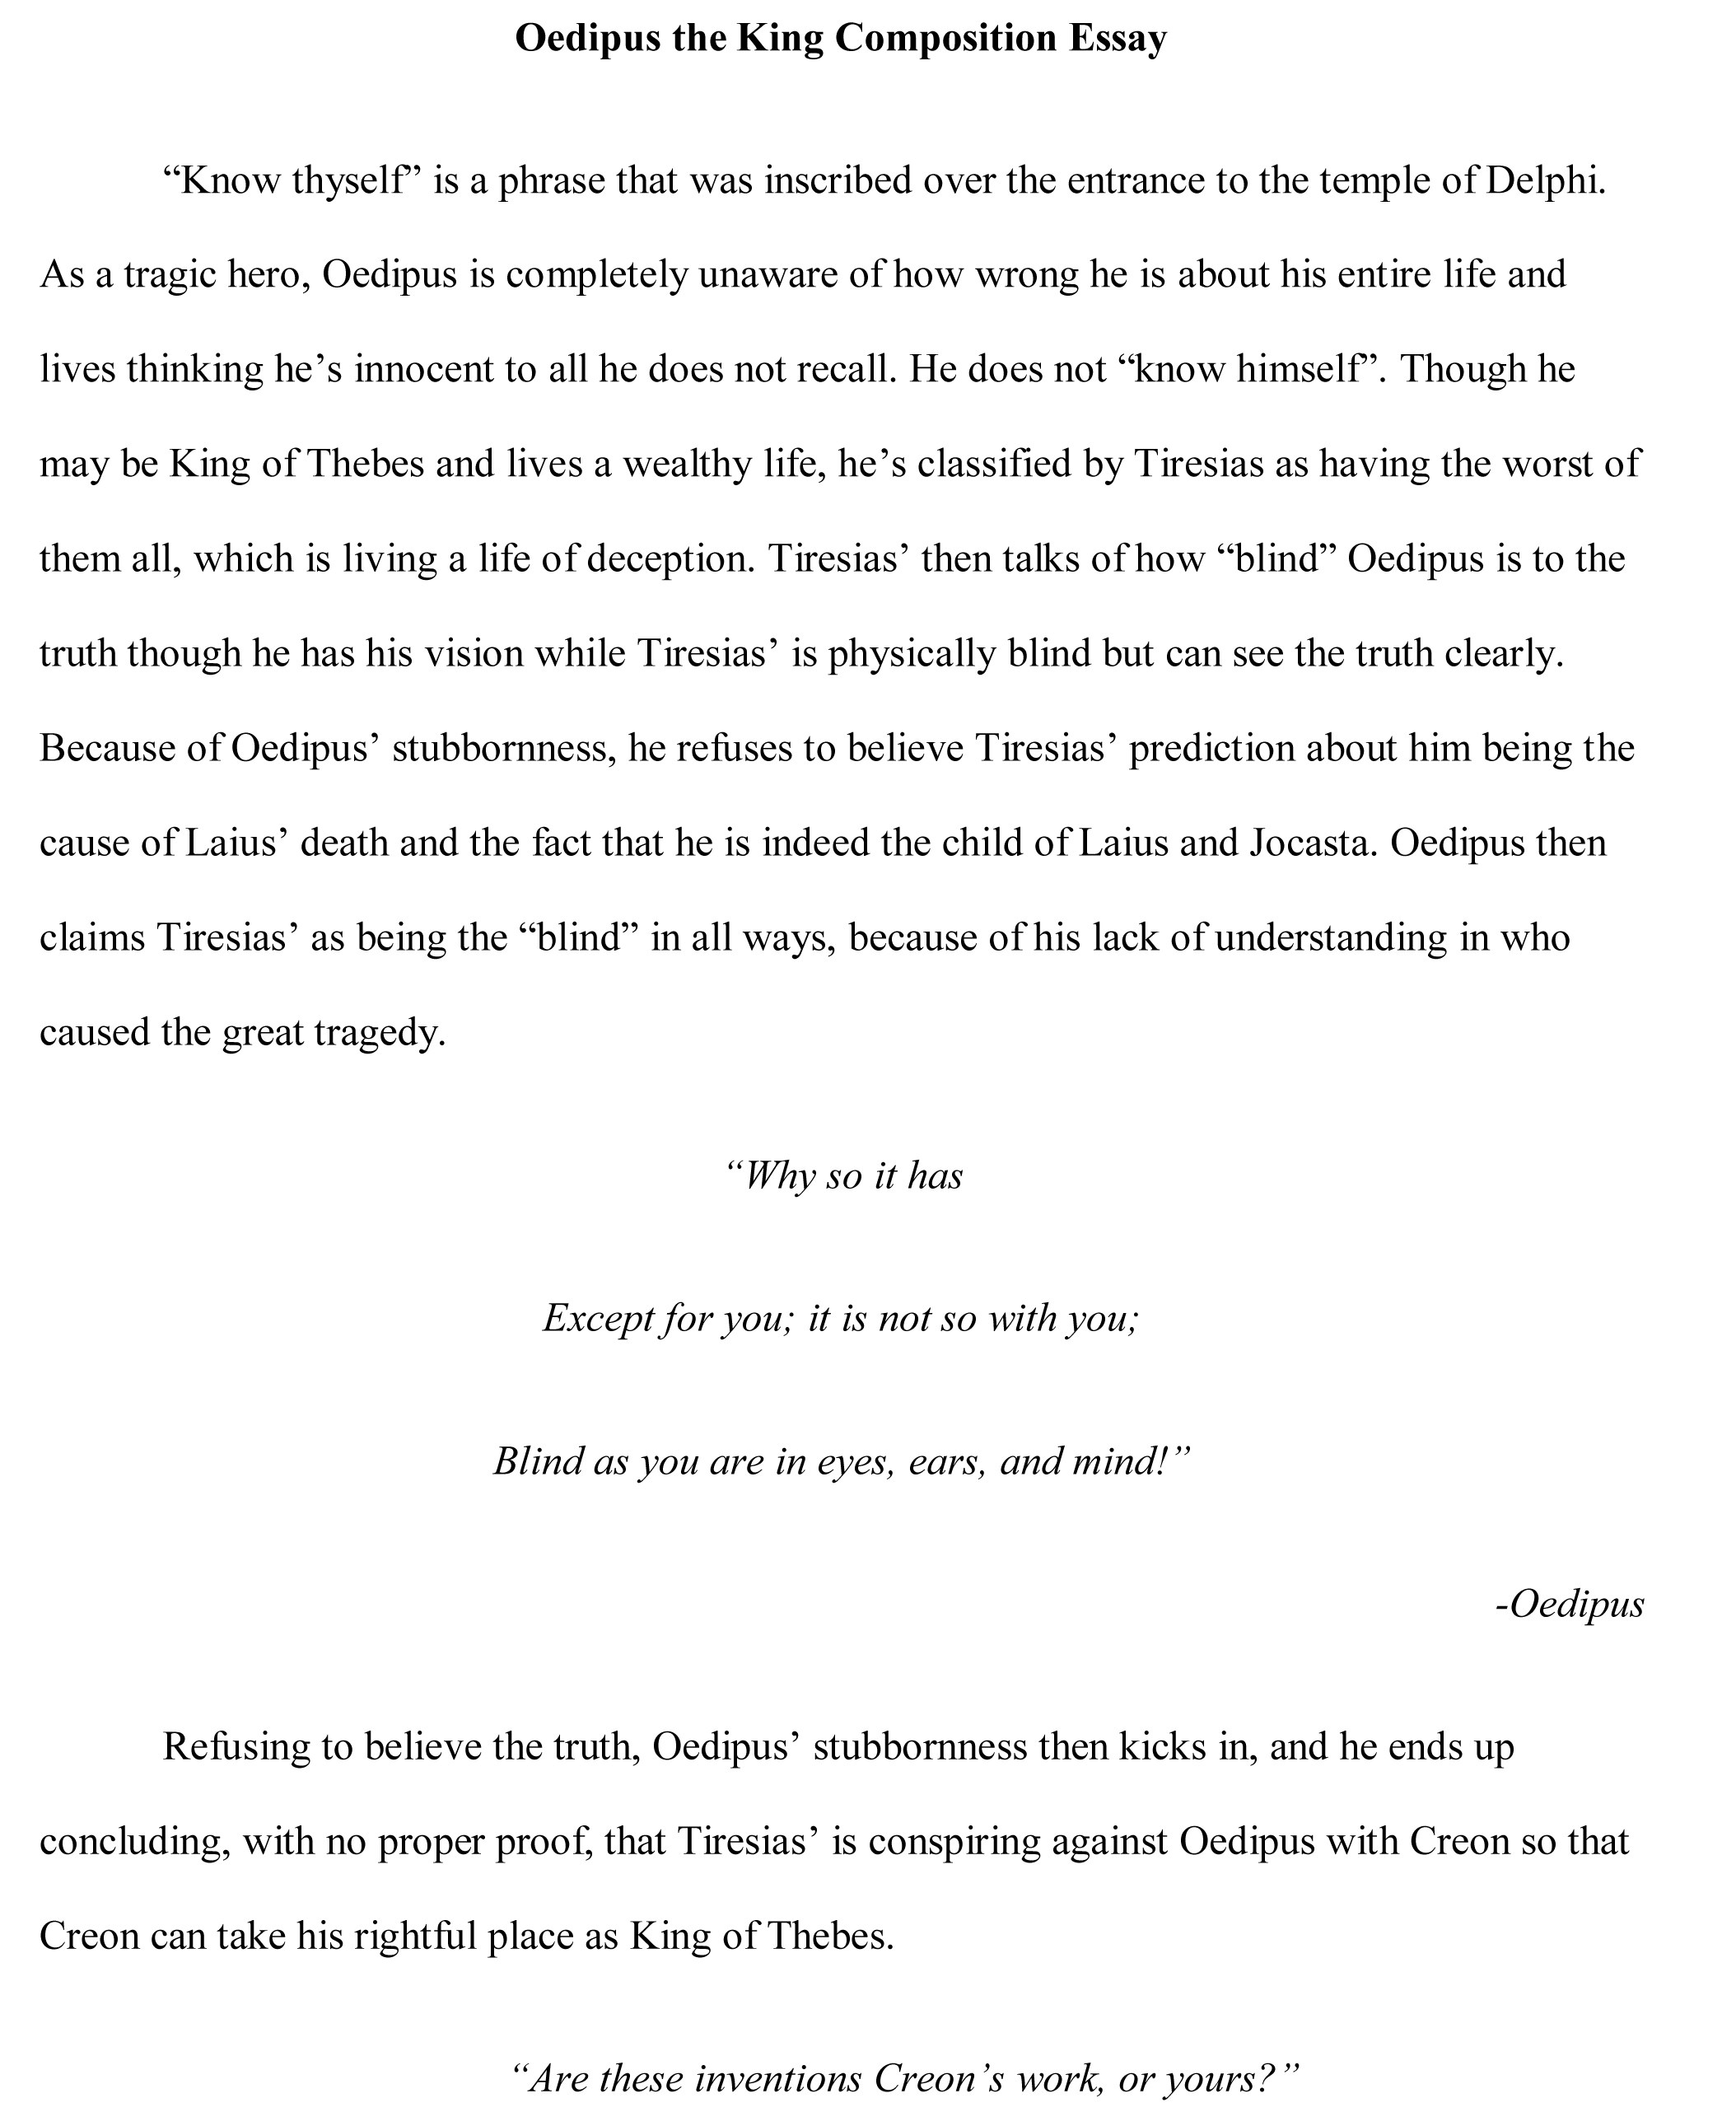 005 Argumentative Essays Topics English Essay Ideas For Best To Write An Oedipus Free S Interesting On Good About Easy Dreaded Literature Question Paper Class 10 Icse 2015 Maharashtra Board Full